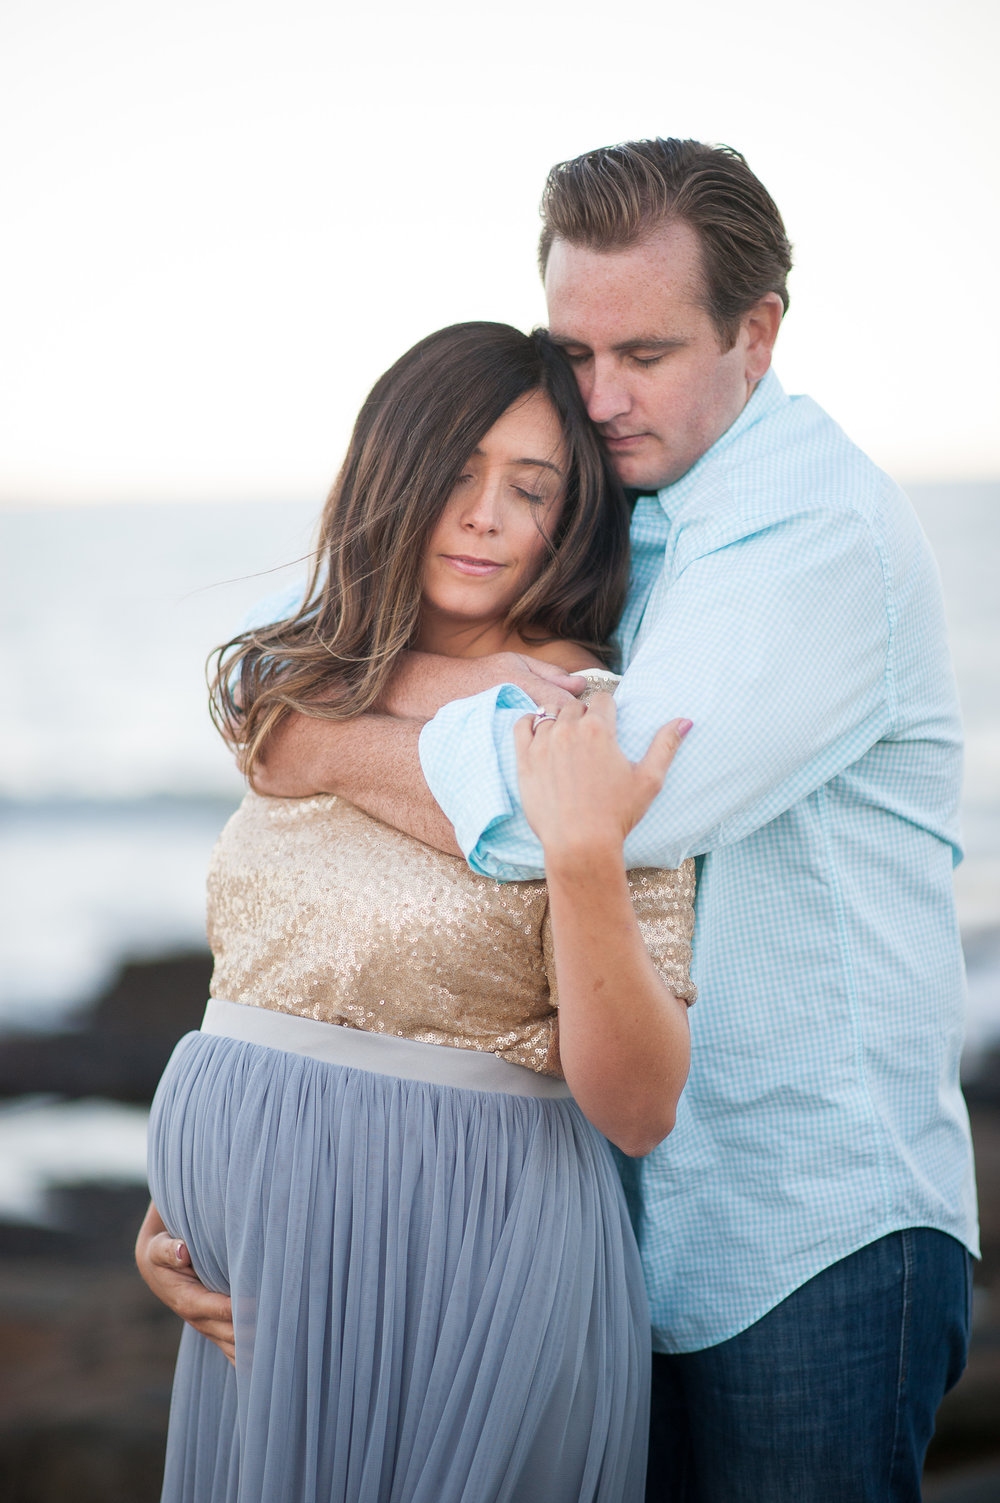 northshore ma maternity photographer Kathryn and Brian-7.jpg